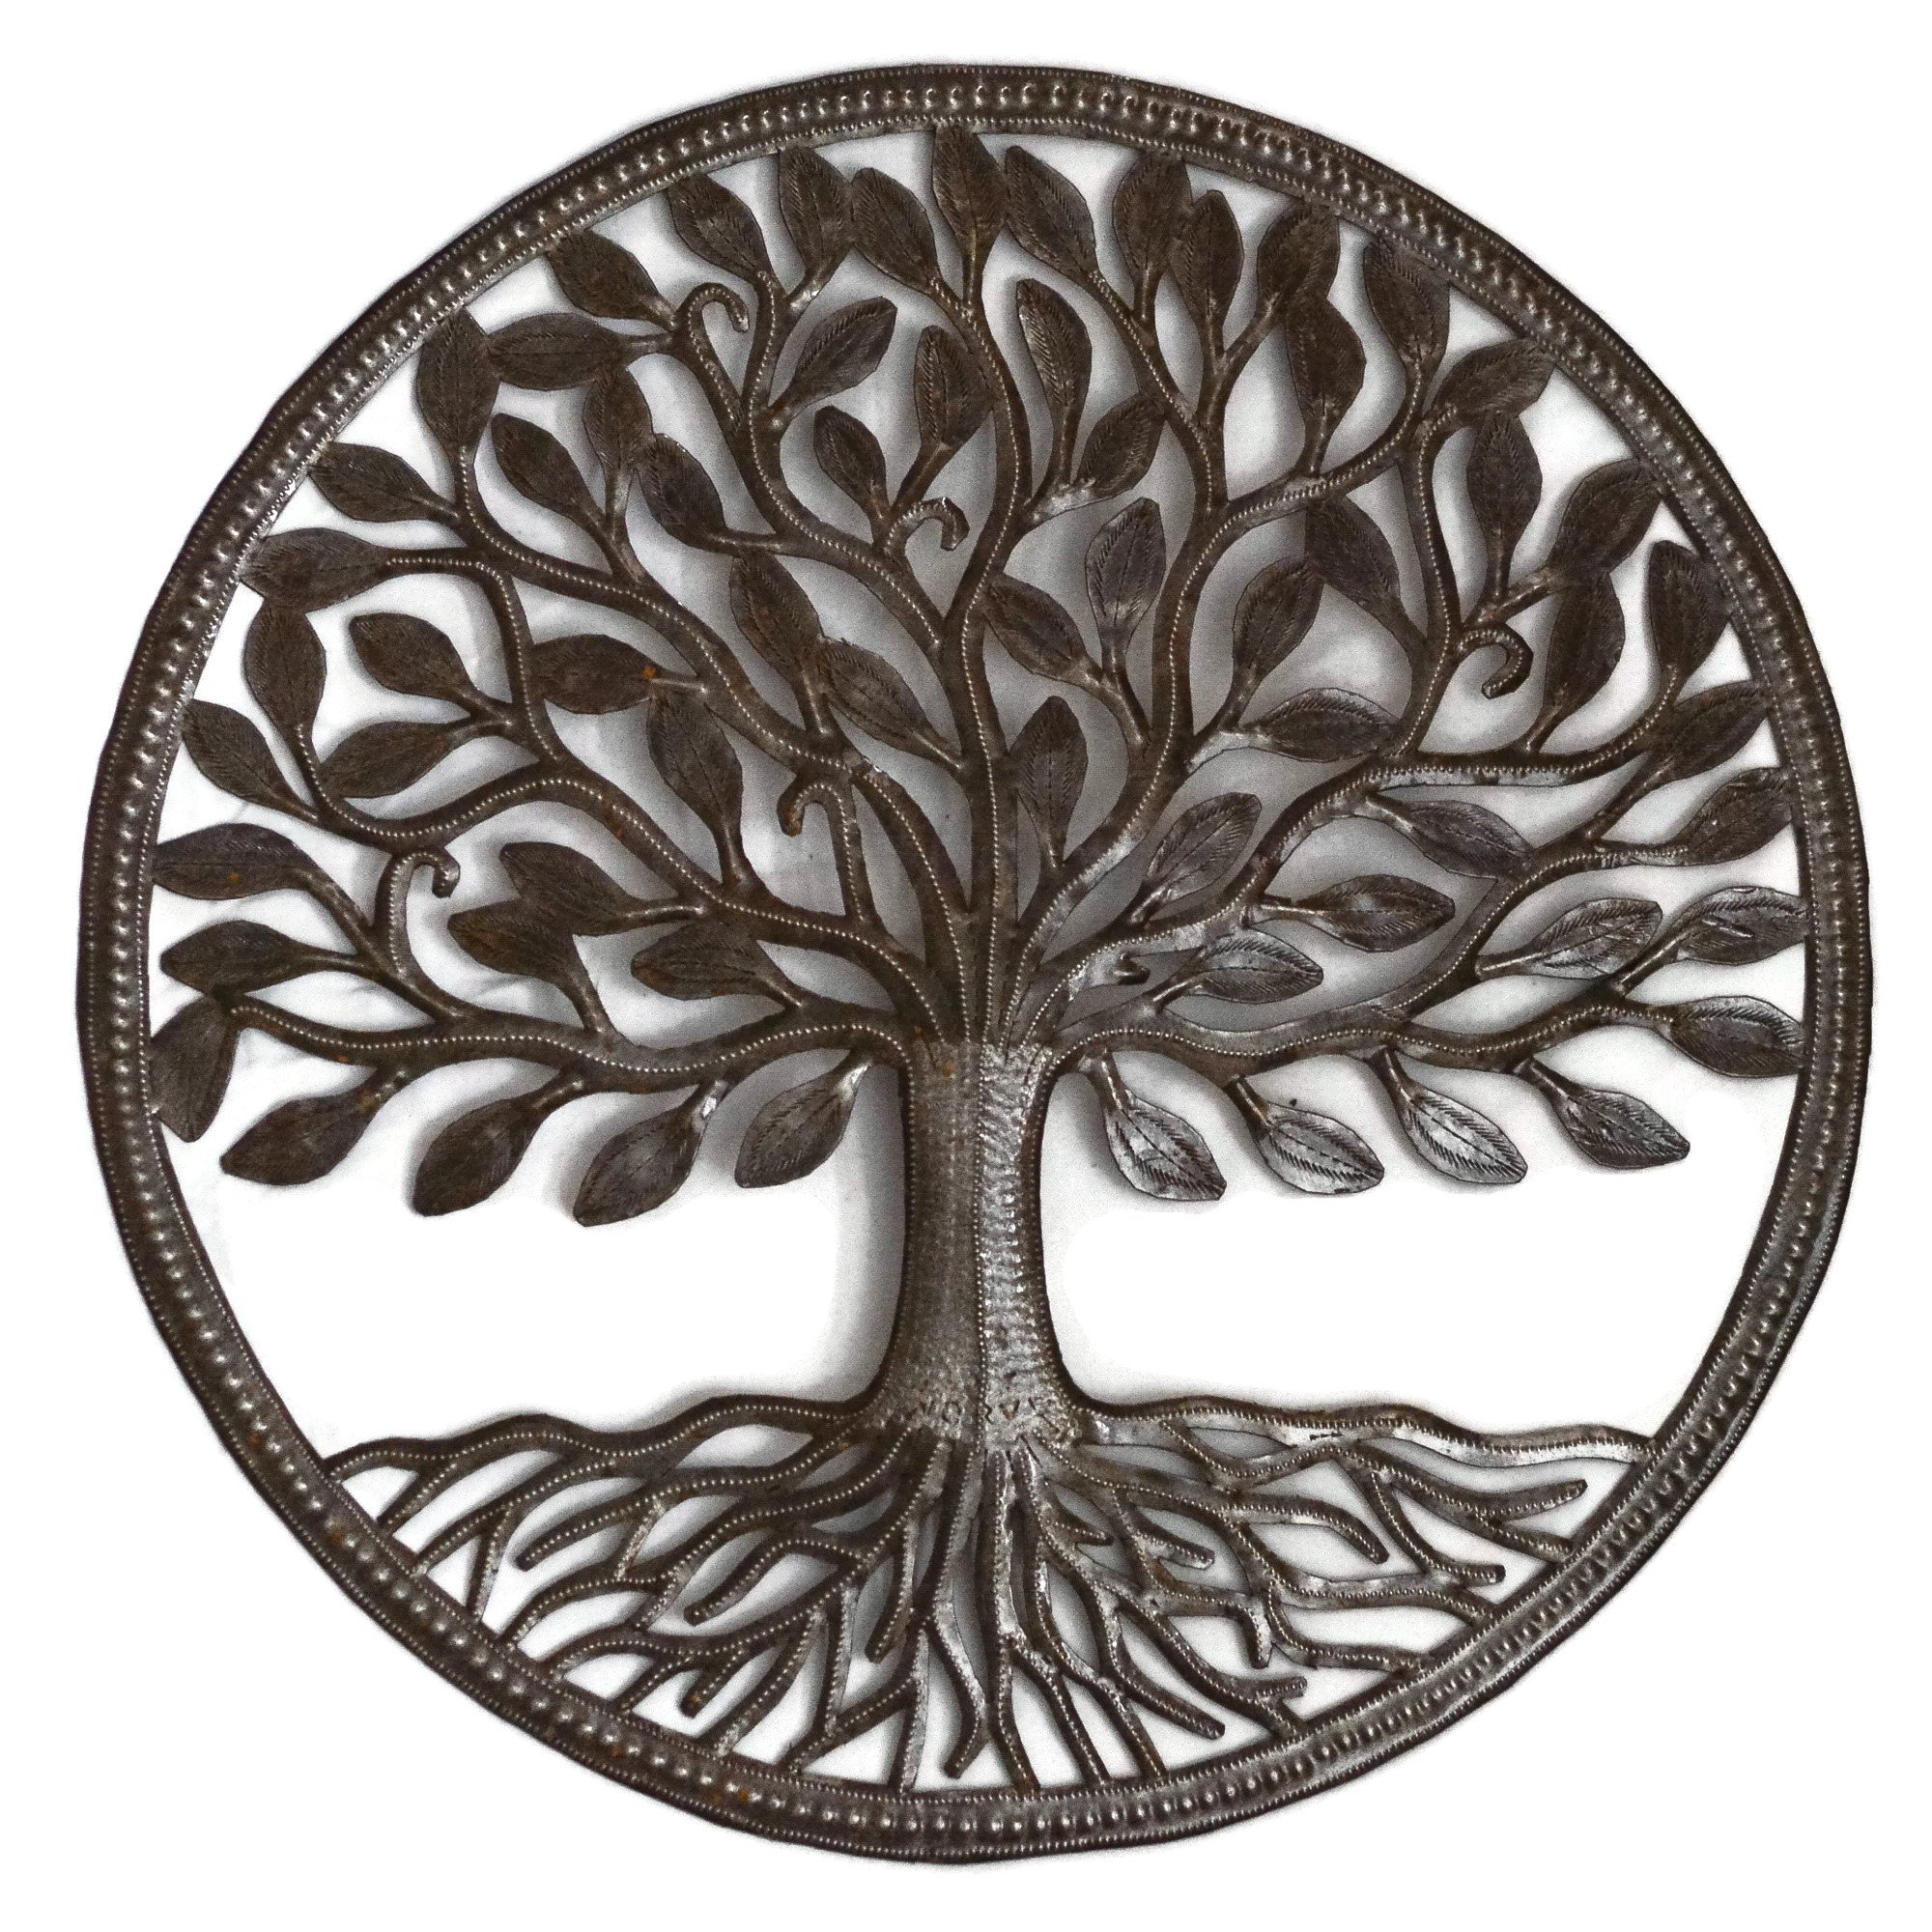 Steel Drum Organic Tree of Life Recycled Metal Art from Haiti, Decorative Wall Hanging 23'' X 23''